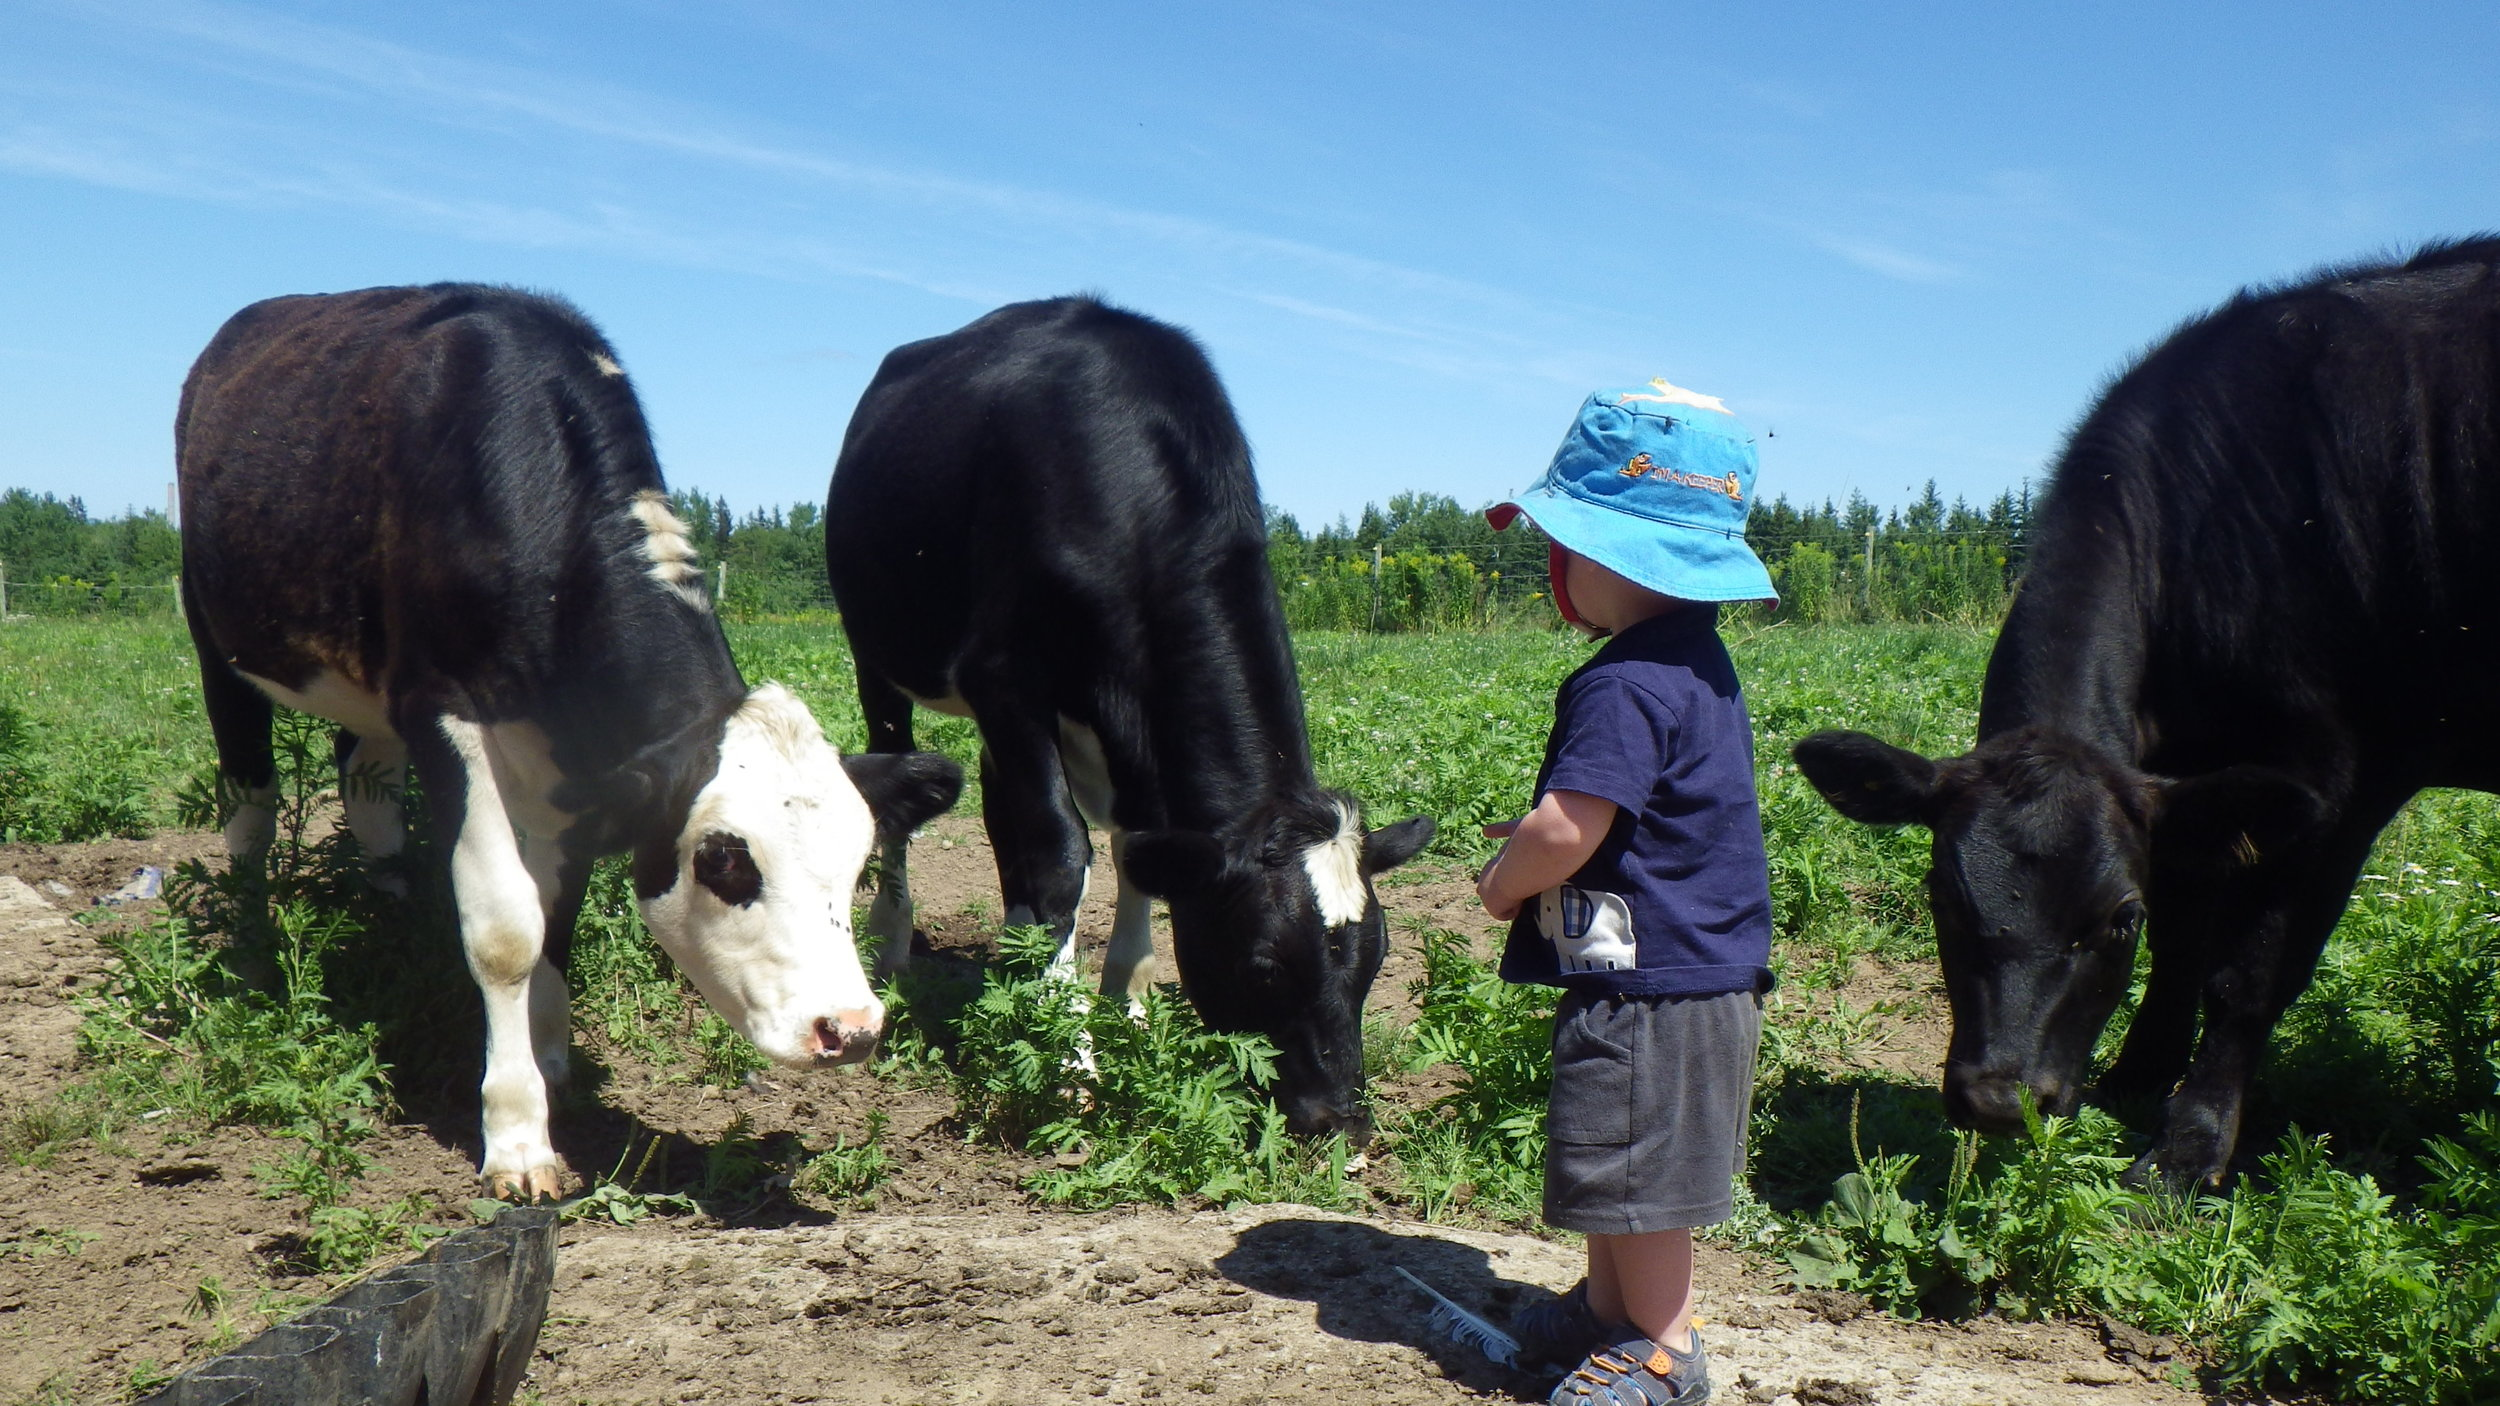 Our farmer in training Victor checks his cows to make sure they have lots of grass to eat